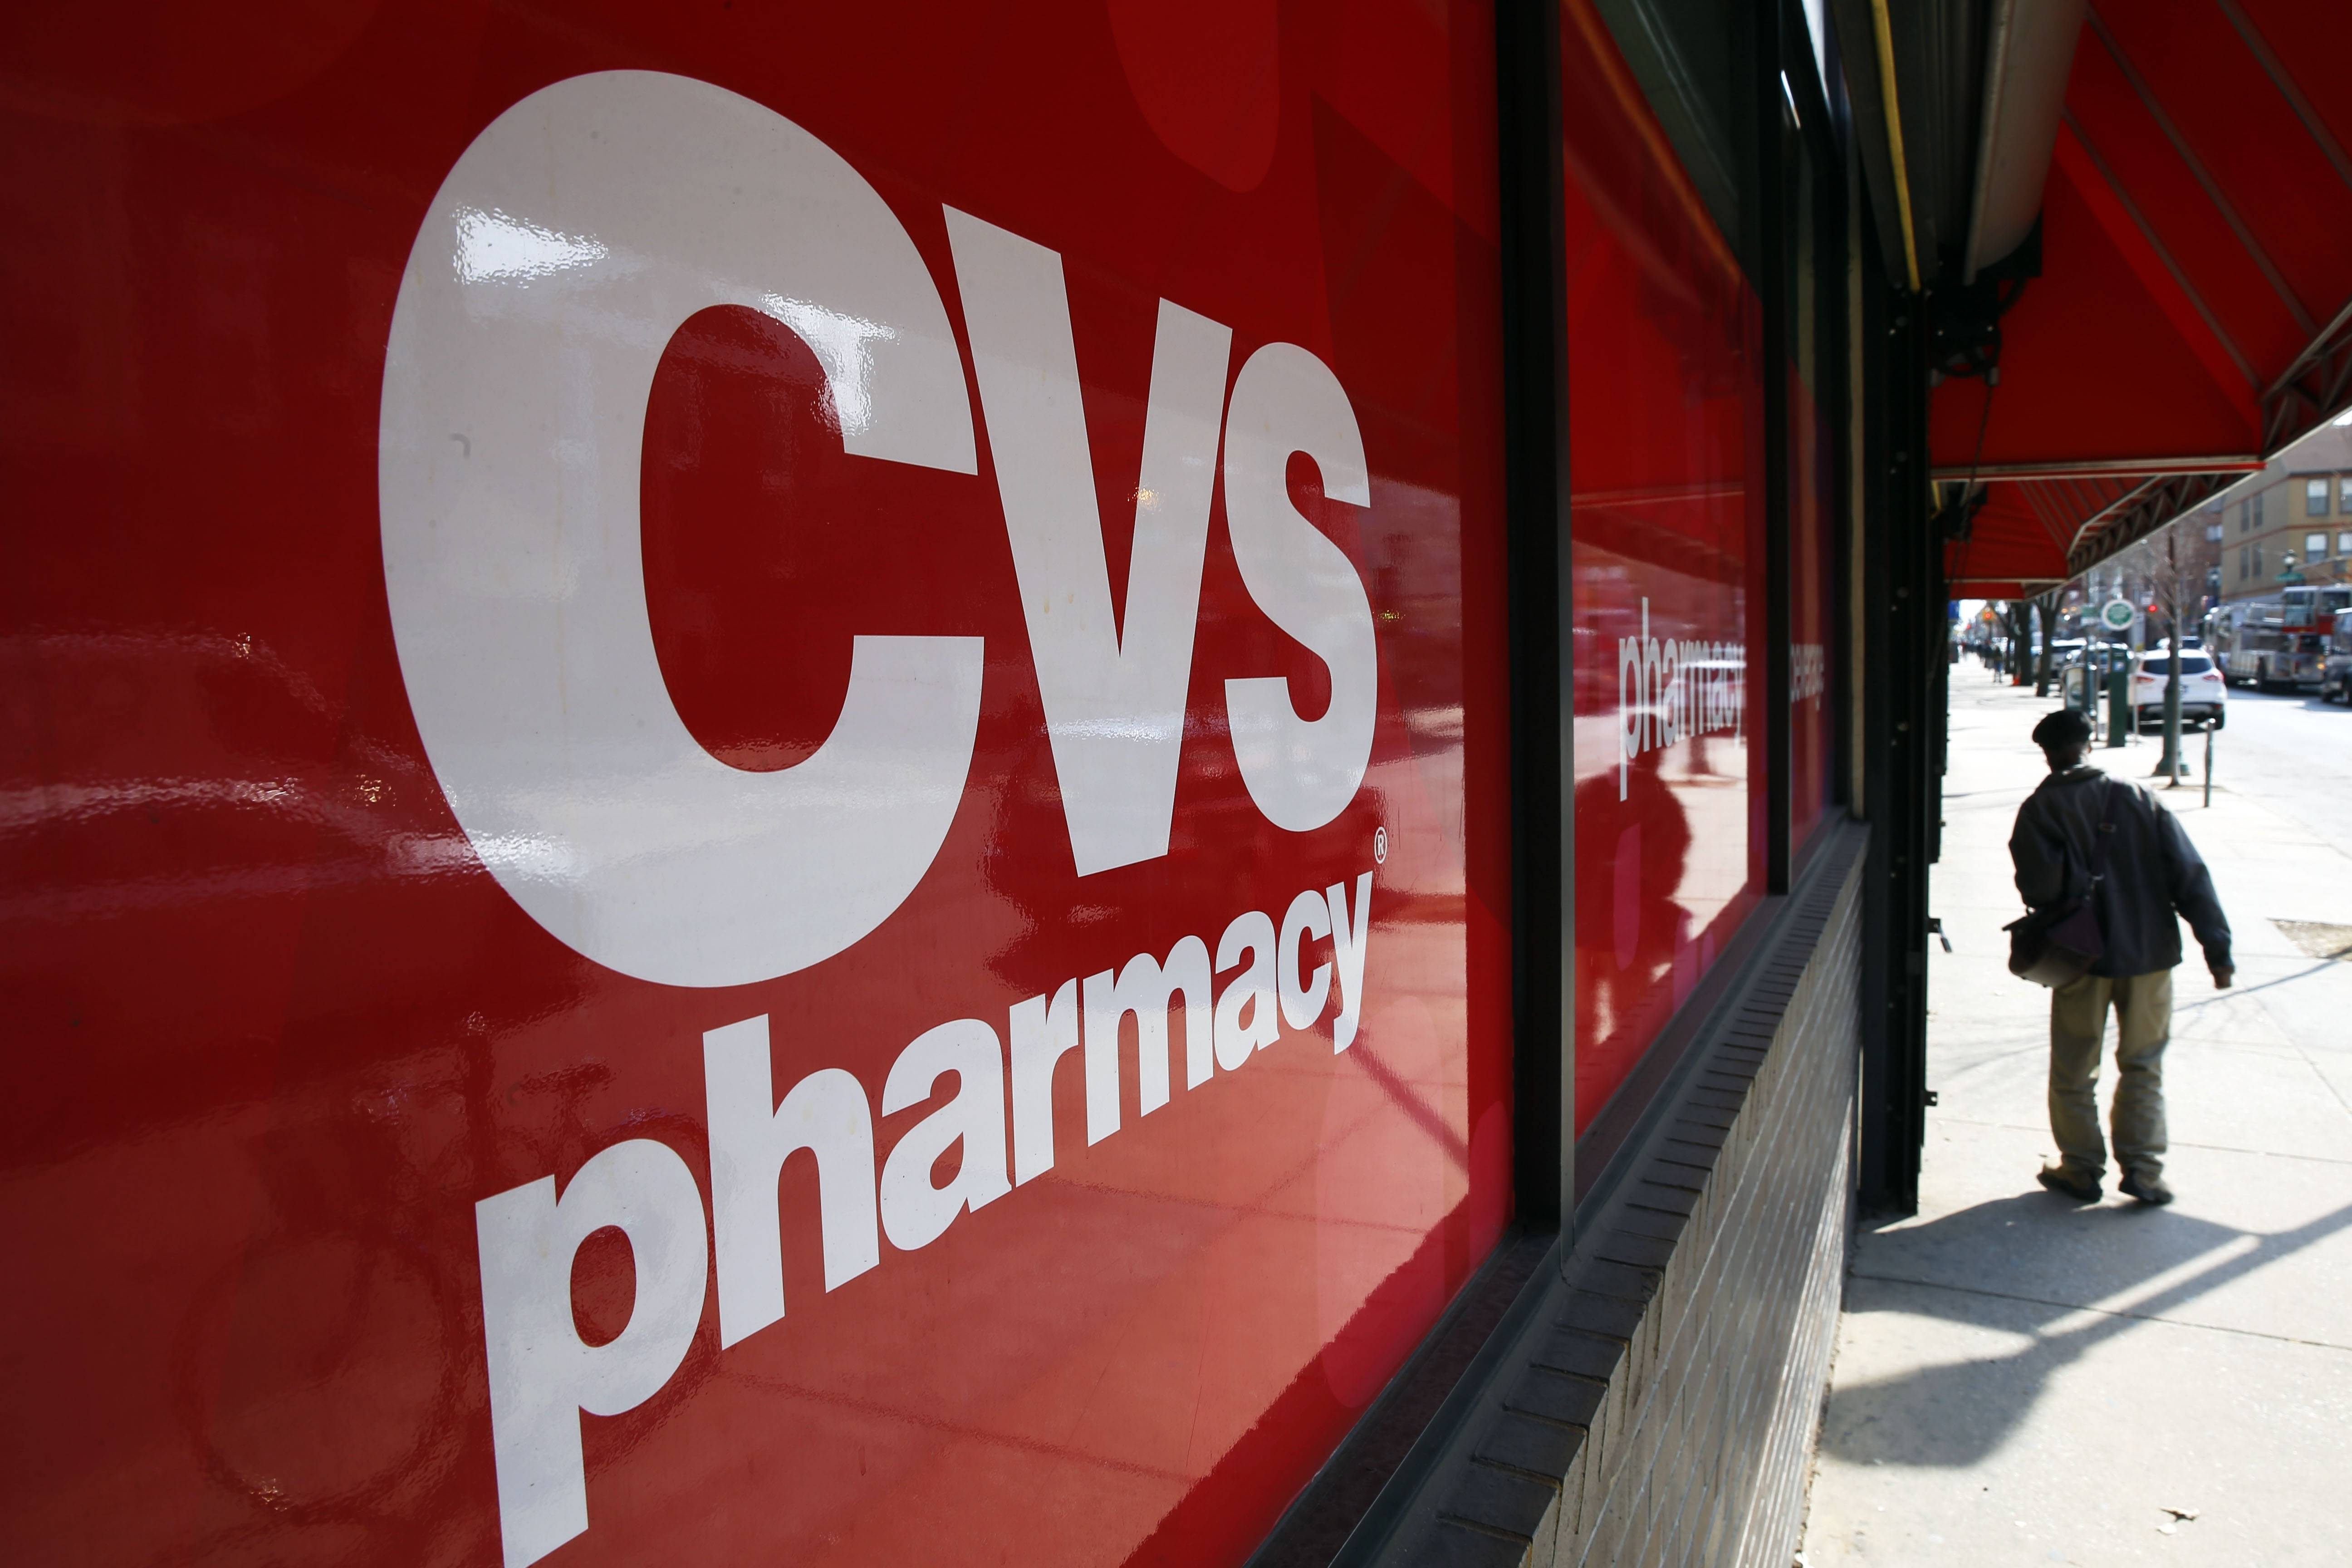 CVS Caremark's second-quarter earnings jumped 11 percent to top expectations, as more specialty and generic drug use helped fuel growth for the drugstore chain and pharmacy benefits manager.